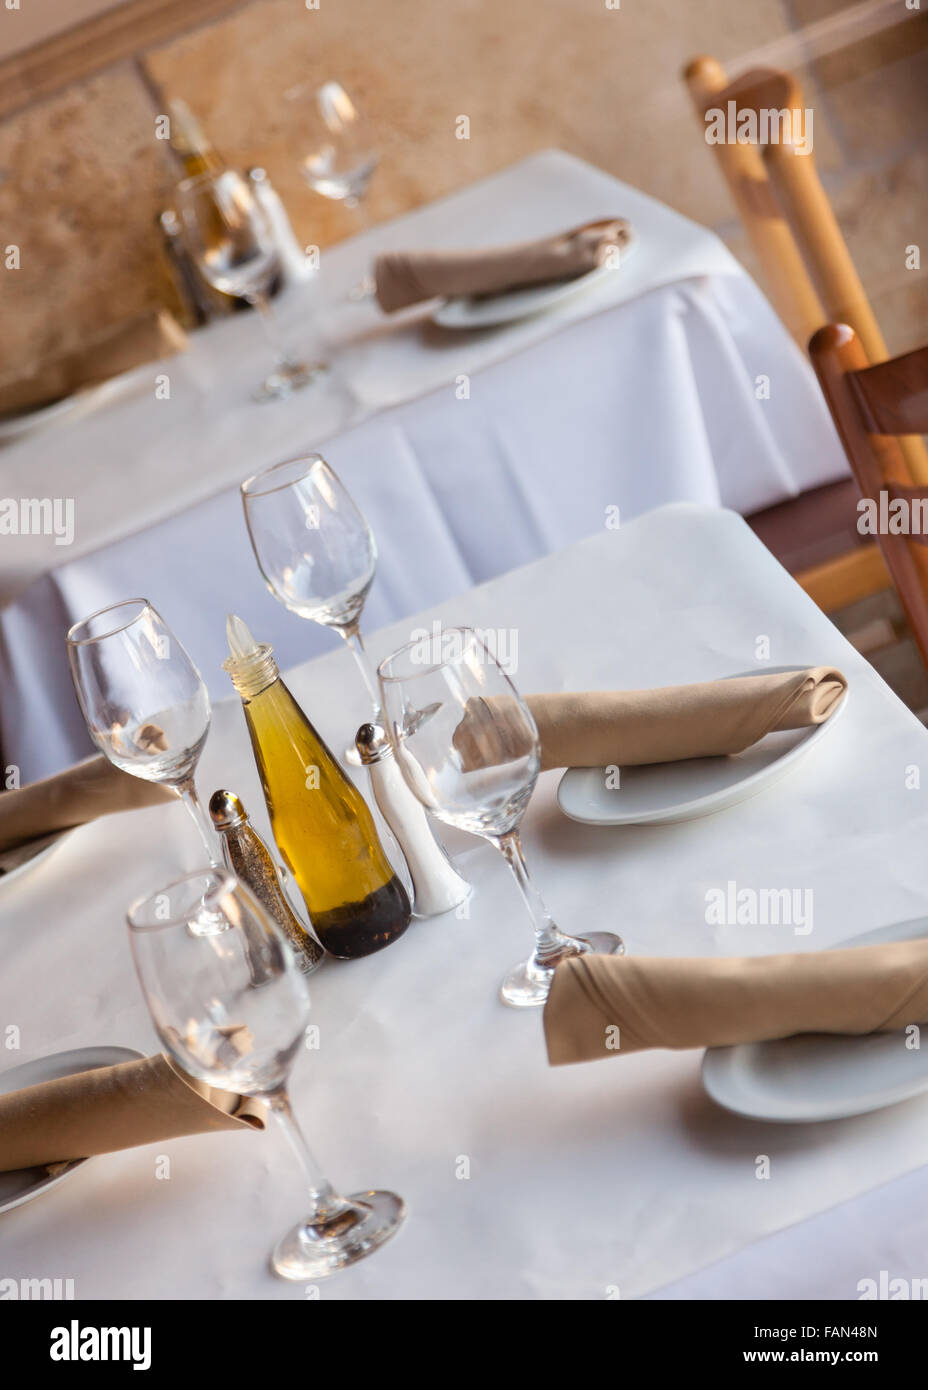 Simple restaurant table setting - Simple Table Setting In A Restaurant With White Tablecloth Napkins And Wine Glasses